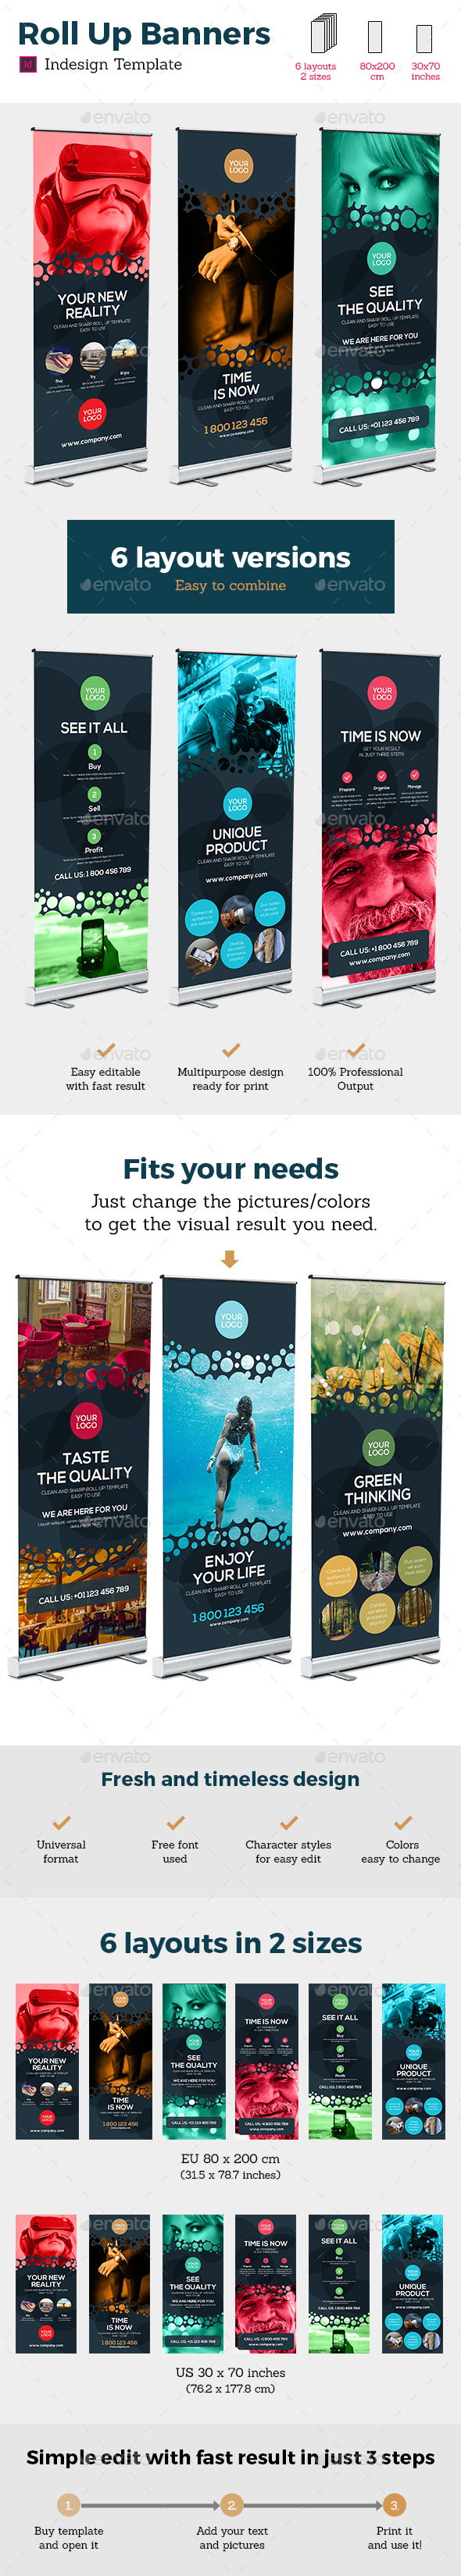 Rollup Stand Banner Display Bubble 12x Indesign Template - Signage Print Templates